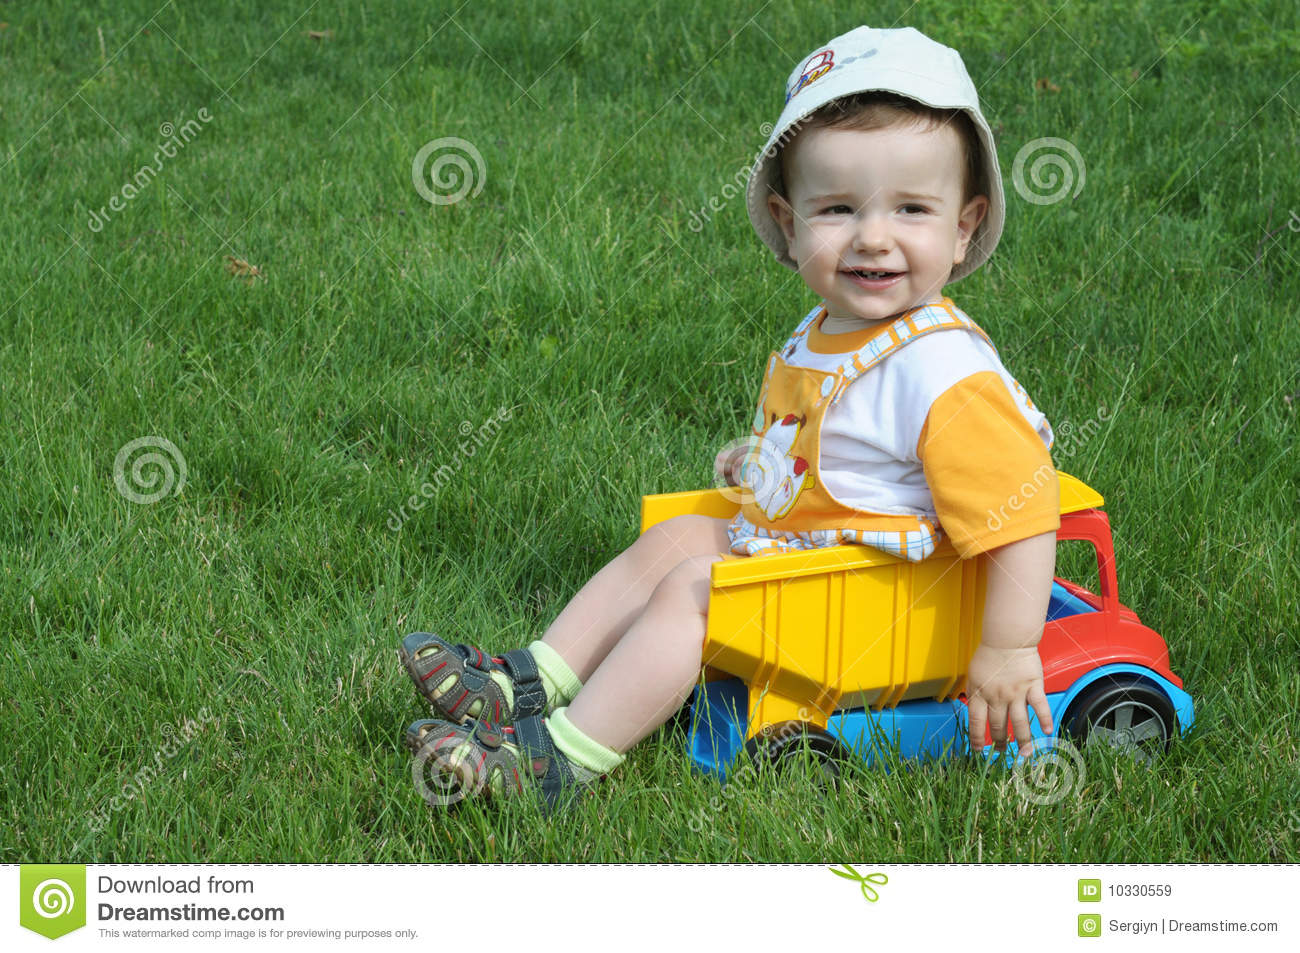 Baby Truck A Baby In The Truck On The Grass Stock Photography